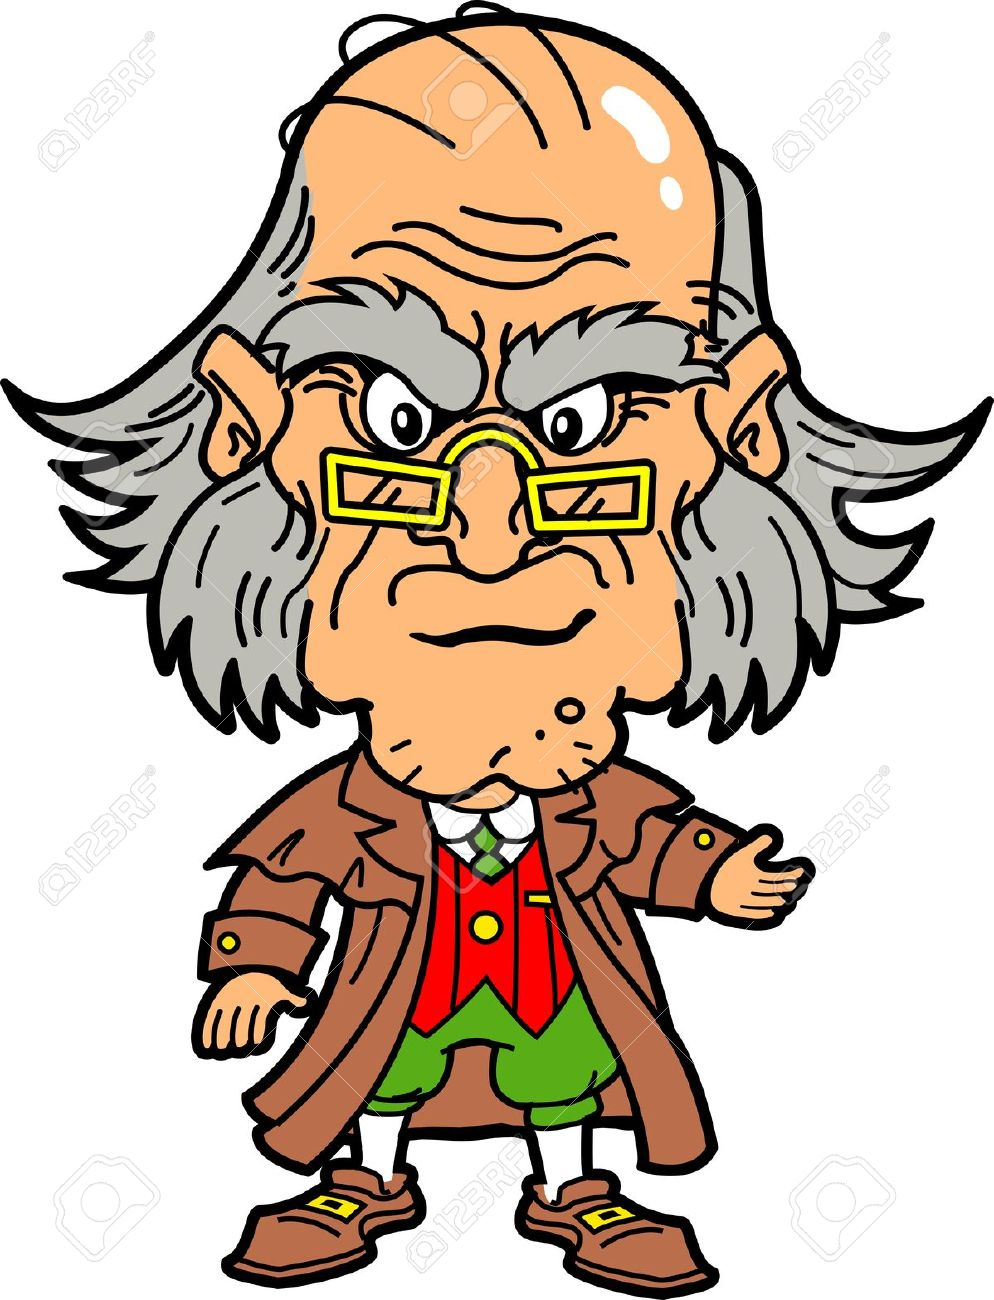 Ebenezer Scrooge Making An Angry Face At Christmas Royalty Free.